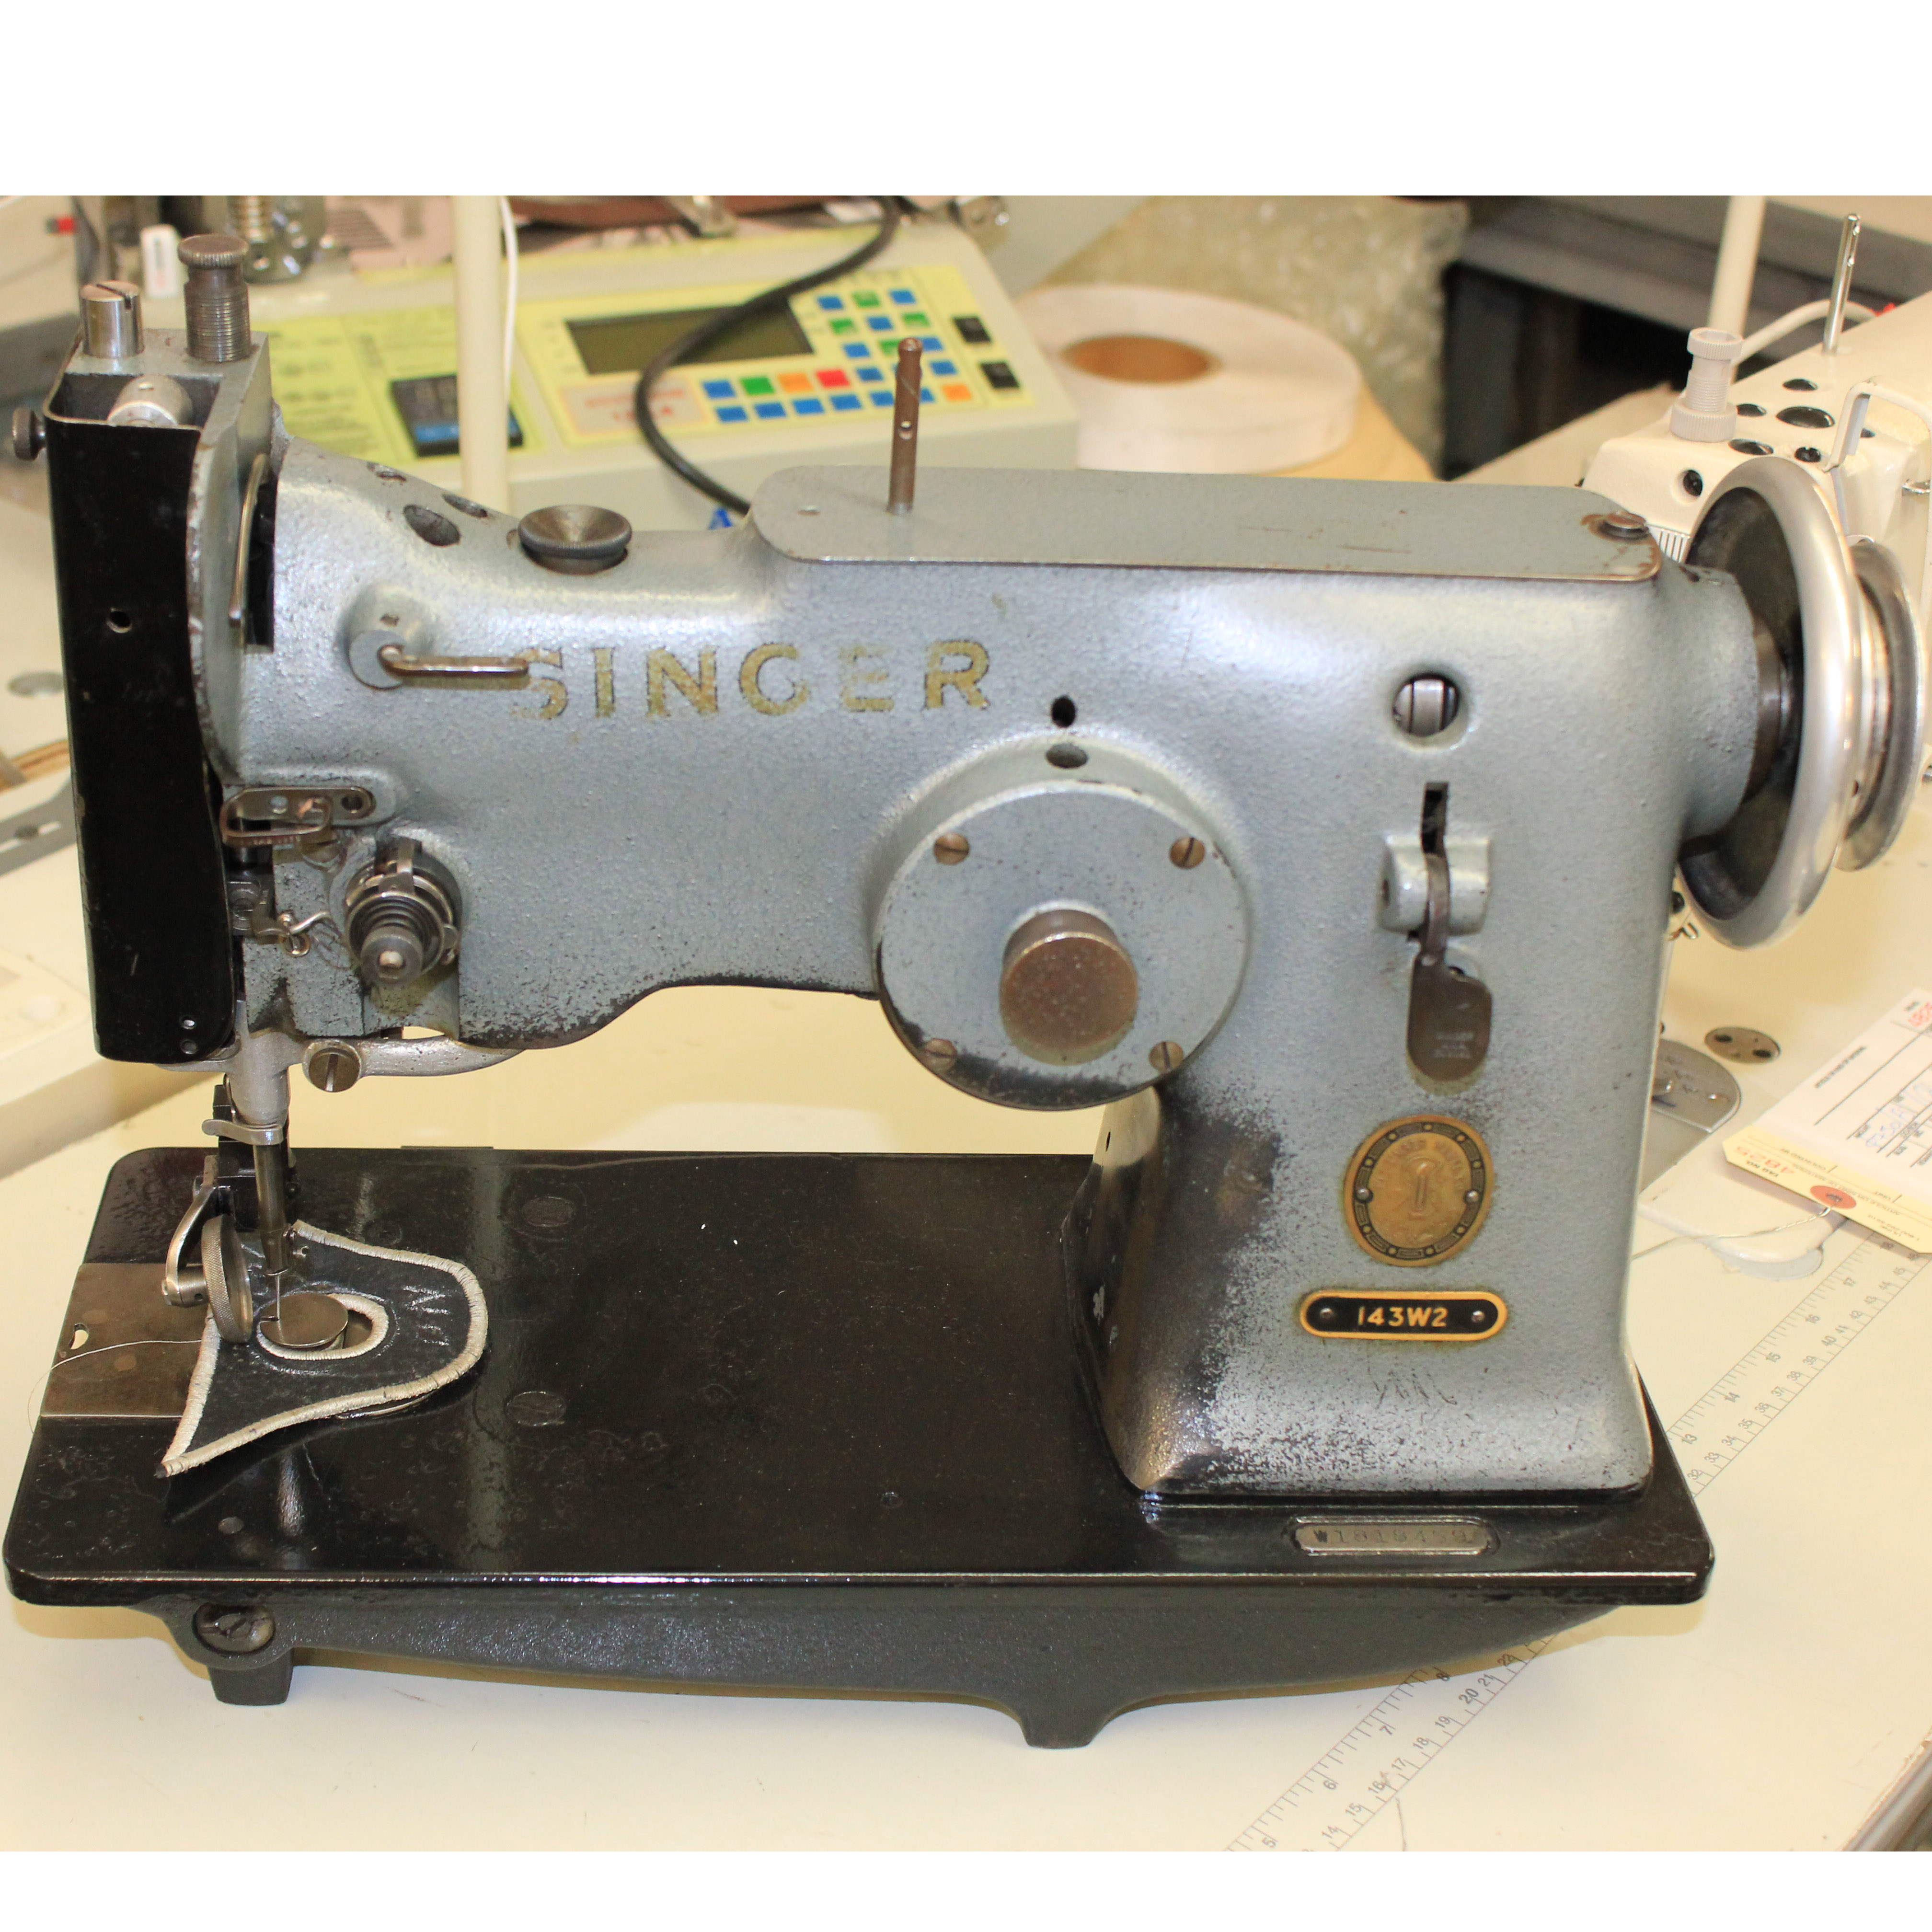 Singer 143w2 Industrial Sewing Machine Tag 4818